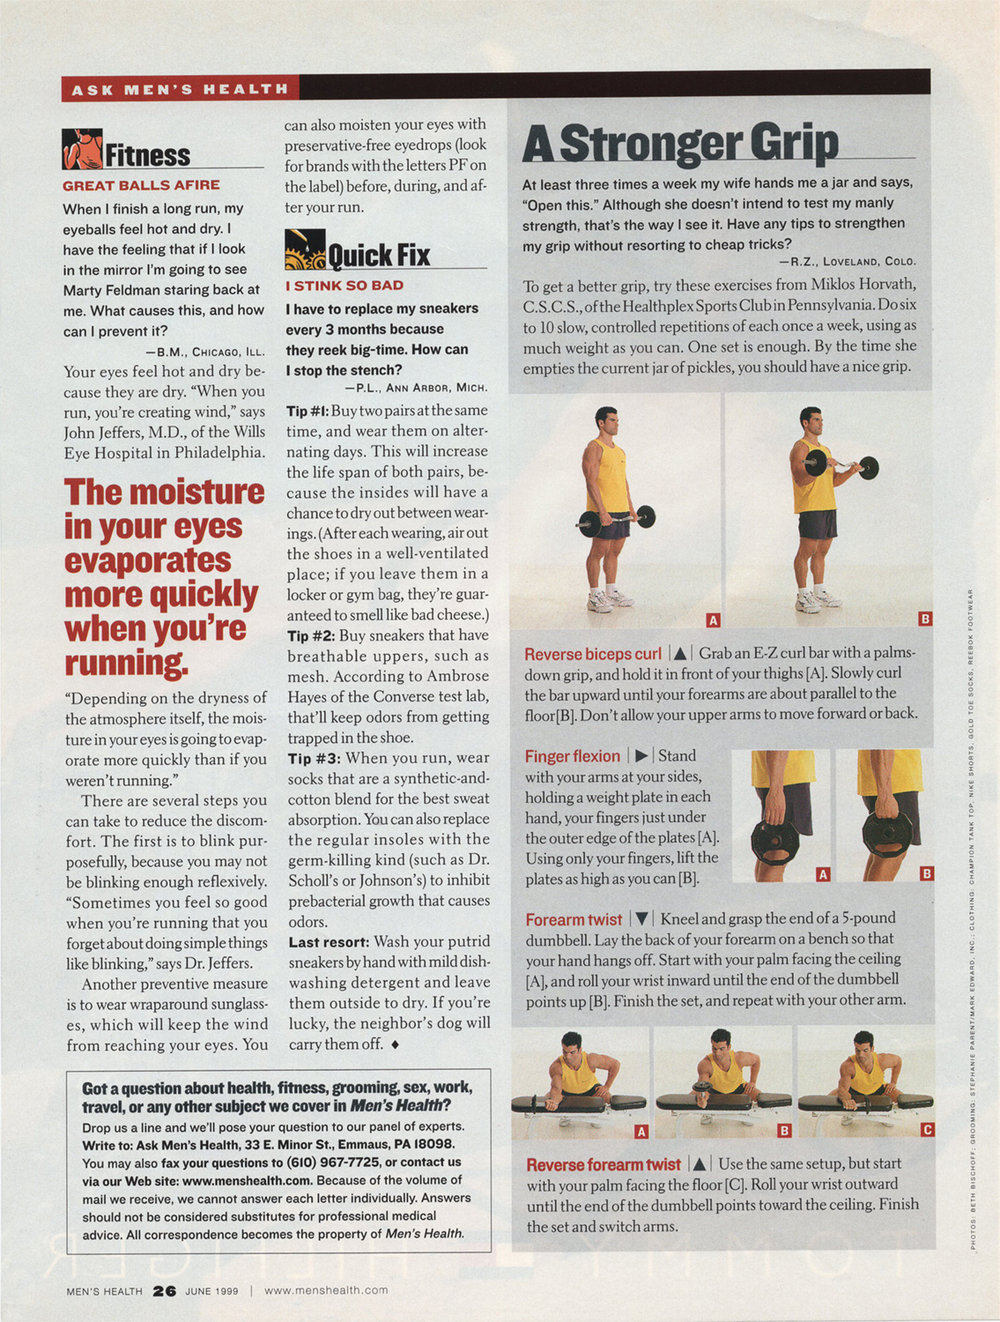 Men's Health Magazine, Arm Routine